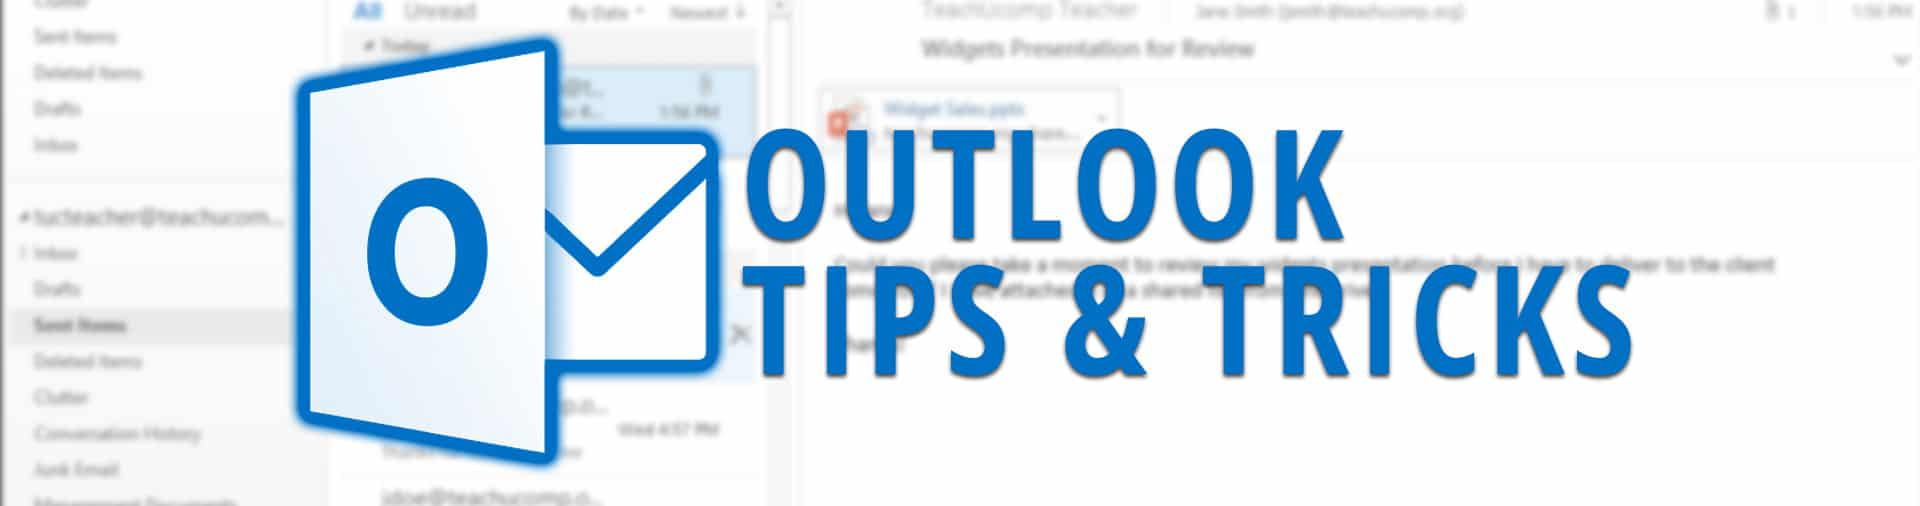 outlook tips and tricks office 365 support outlook support